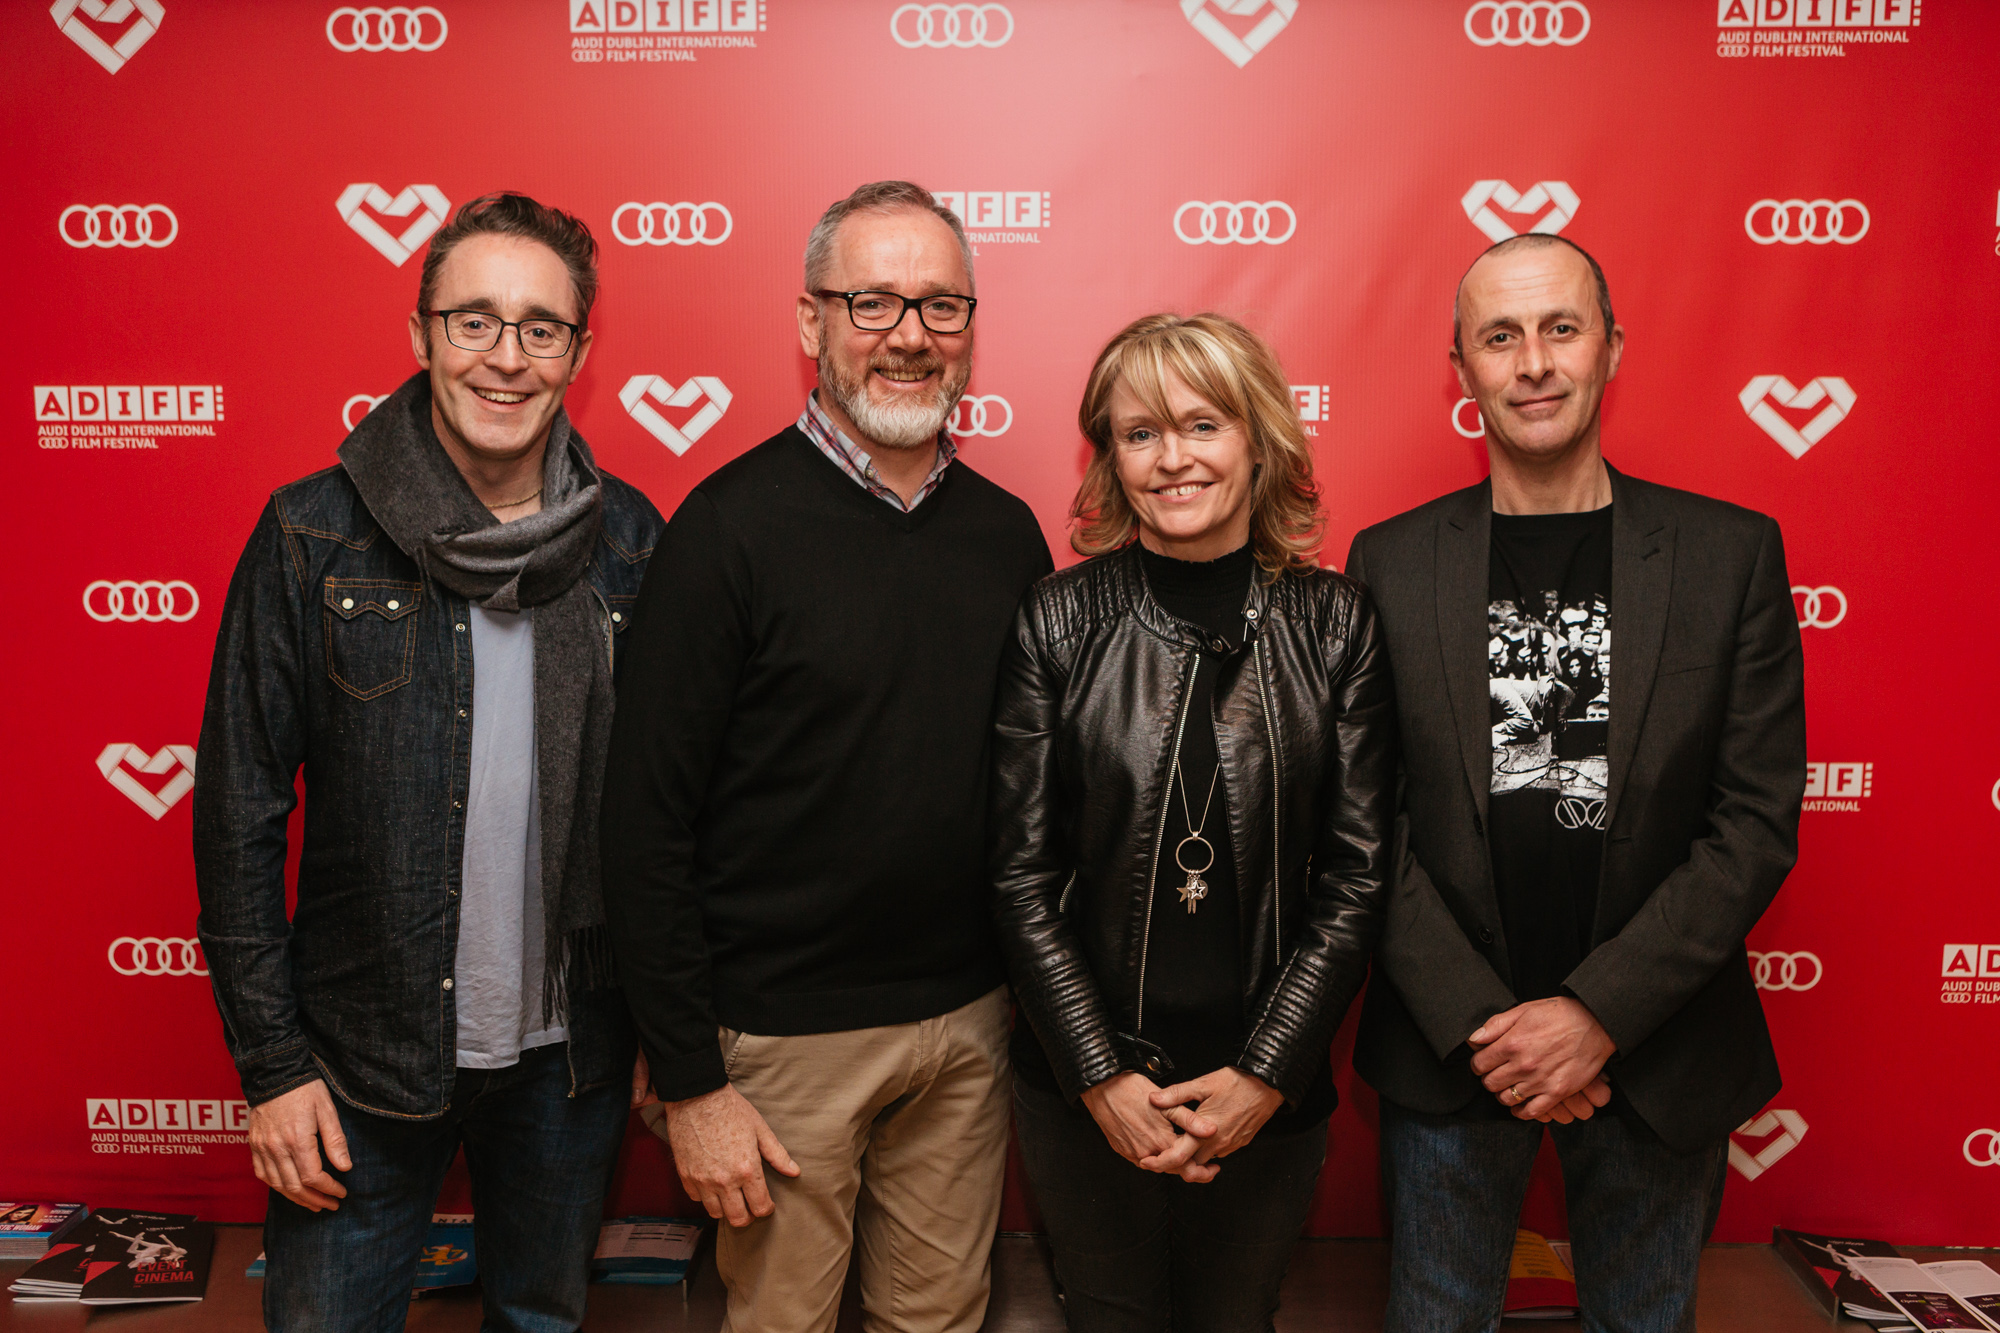 Short Film Award 2018 Jury members Geoff Fitzpatrick and Nick Costello and Discovery Award 2018 Jury members Emer Reynolds and Jason Foran